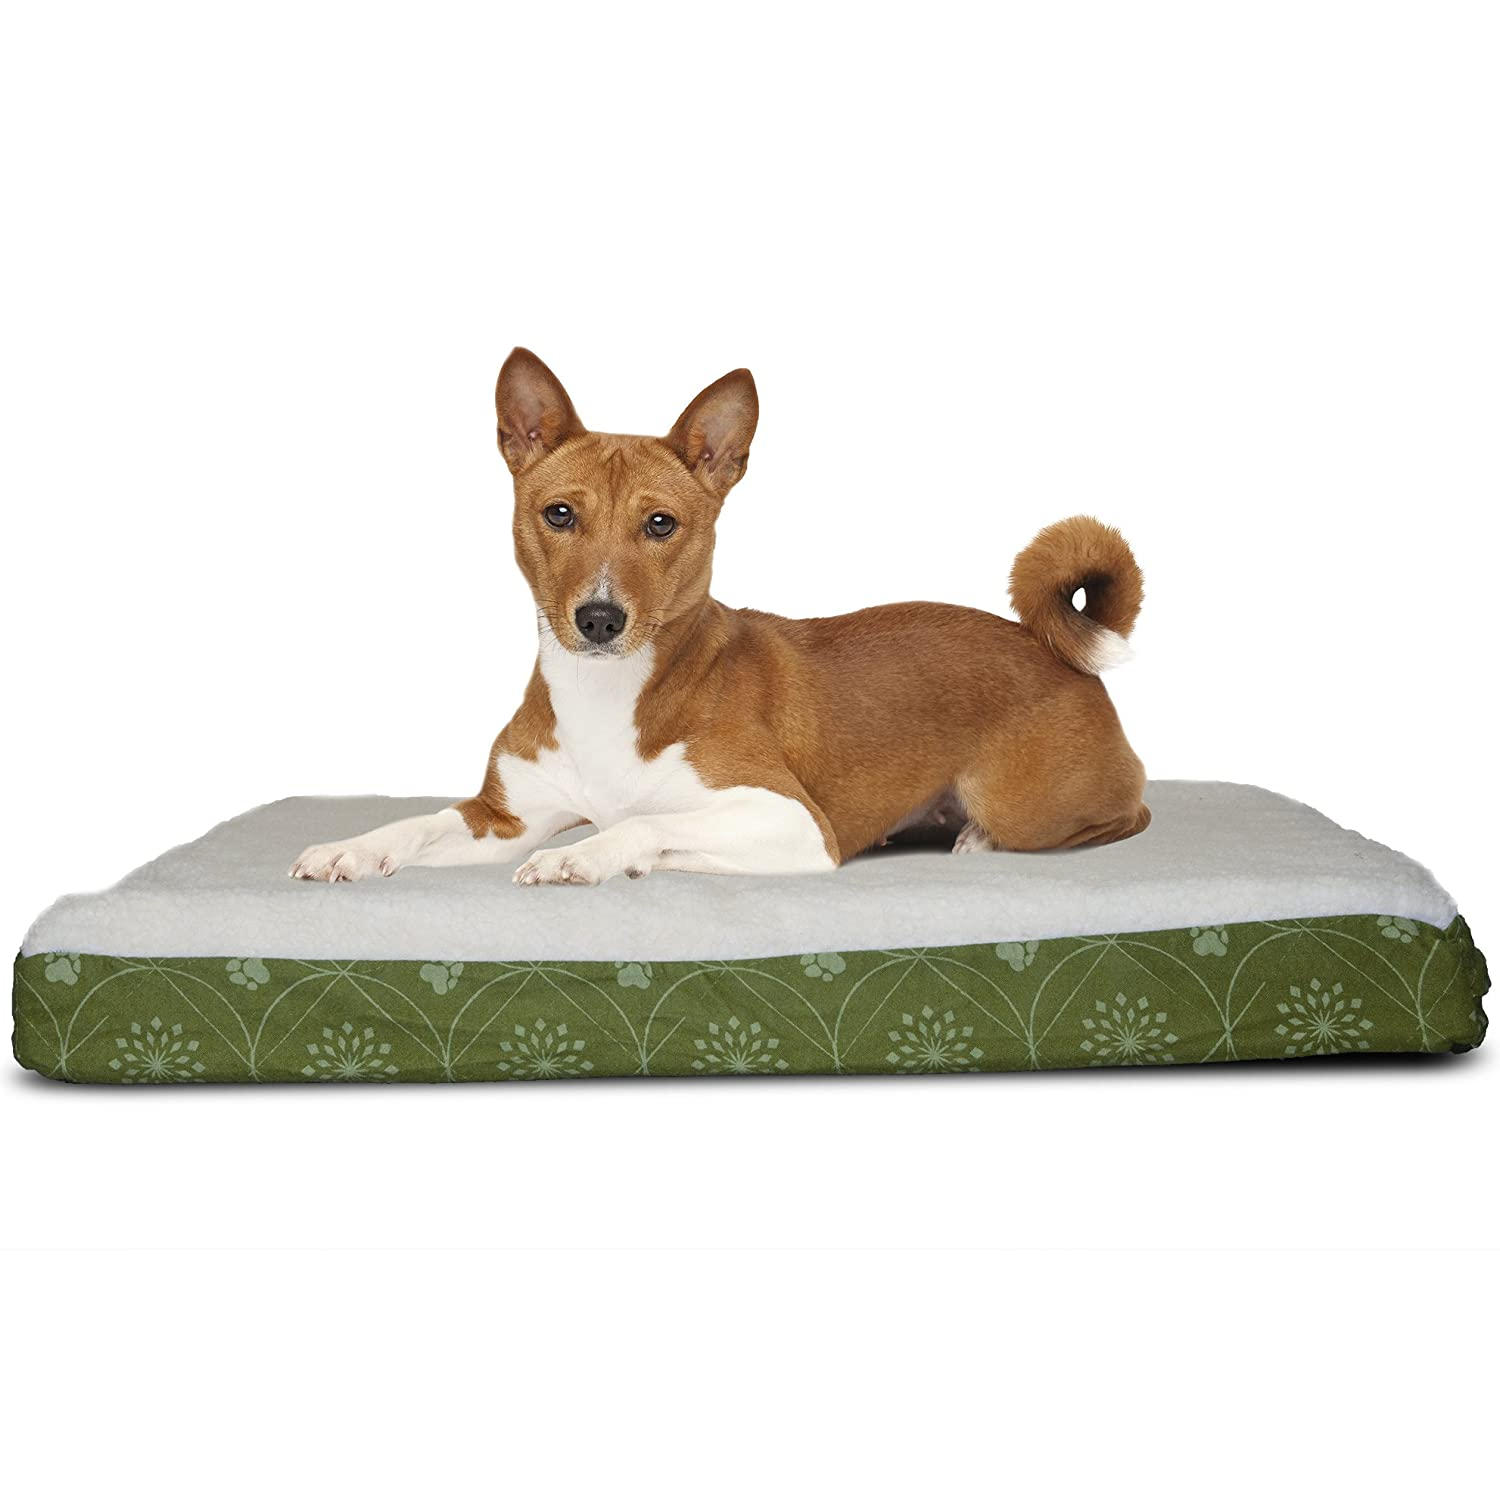 FurHaven Pet Dog Bed   Deluxe Orthopedic Faux Sheepskin Mattress Pet Bed for Dogs & Cats, Jade Green, Medium